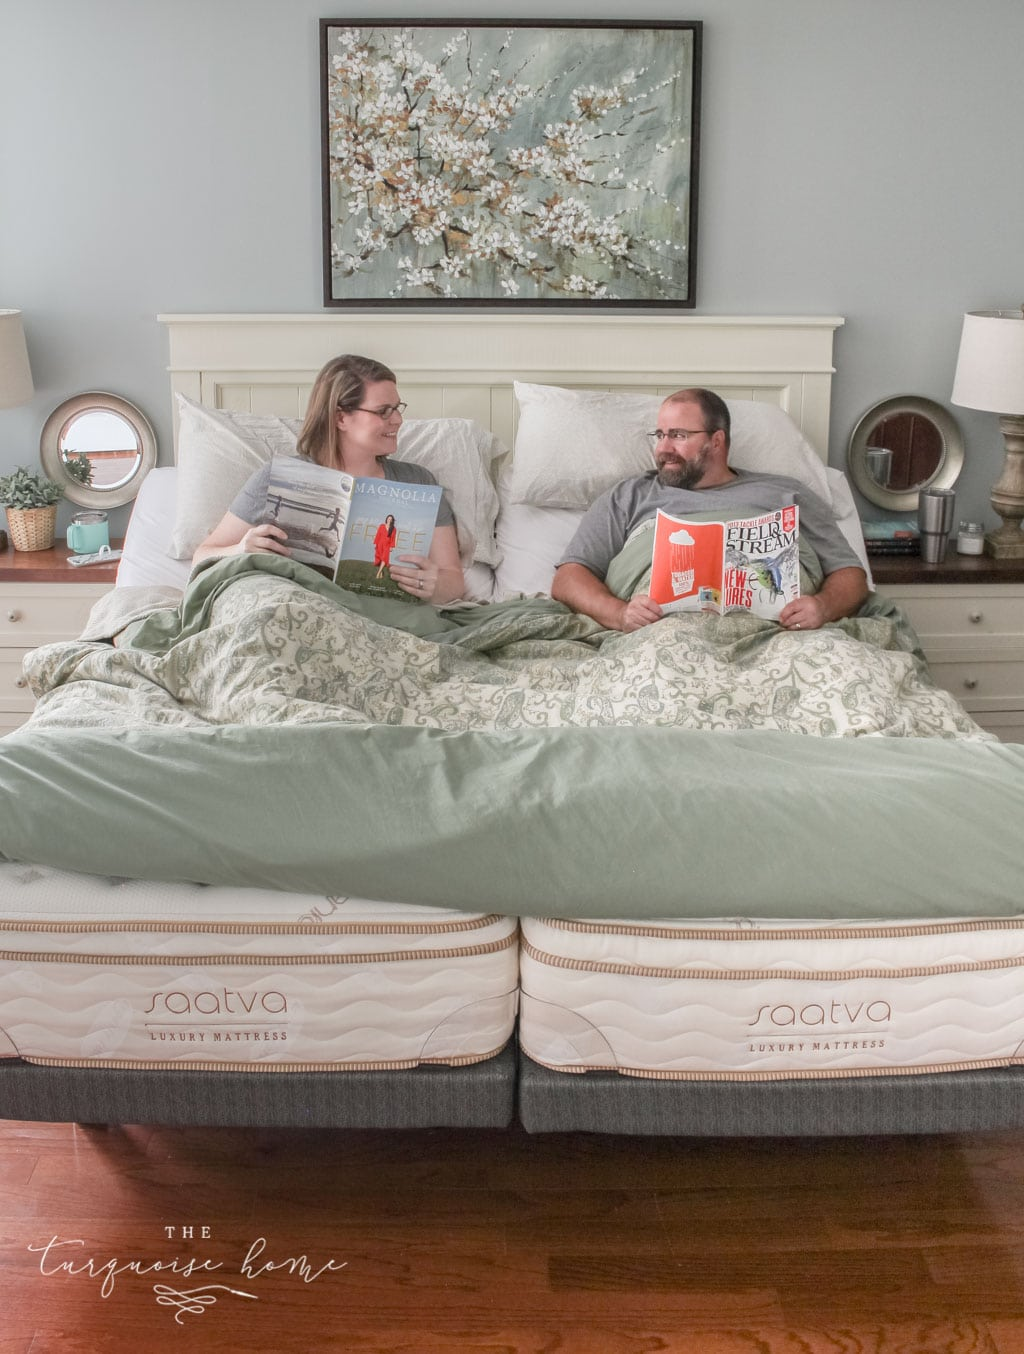 Separate Beds Saatva Mattress, What Size Sheets For 2 Twin Xl Beds Pushed Together